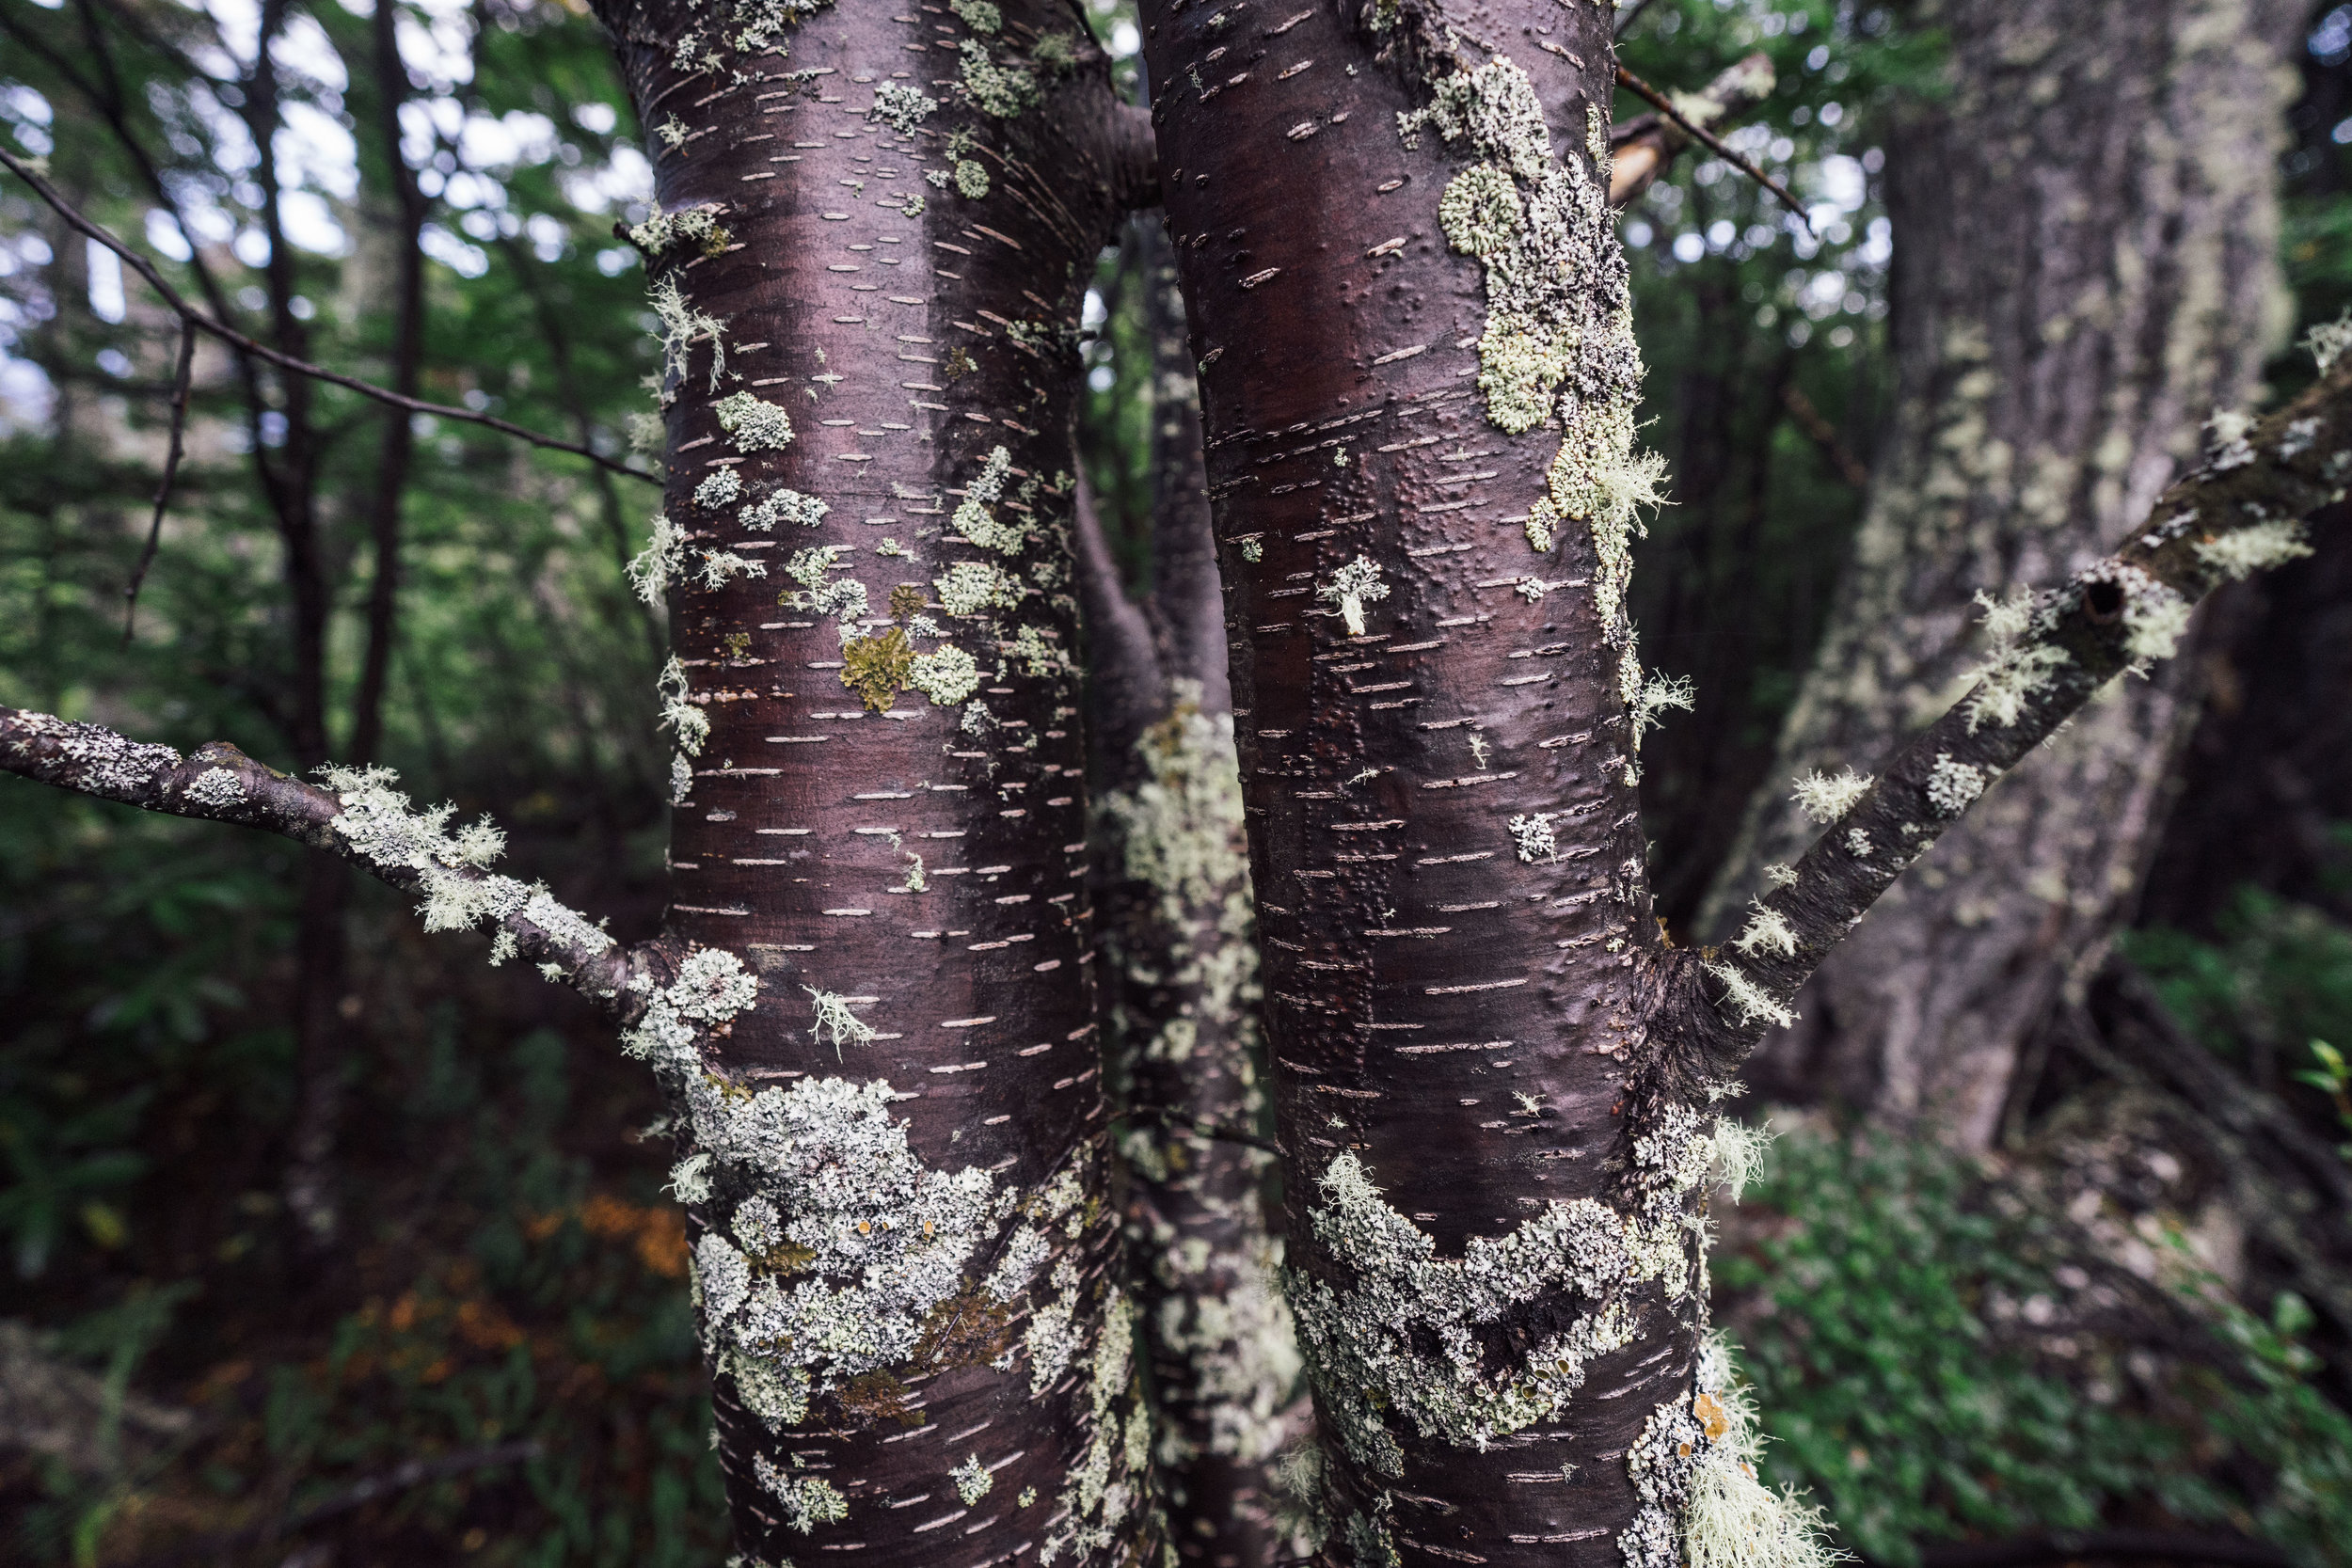 """Lenga"" trees hosting a variety of lichens on their bark"